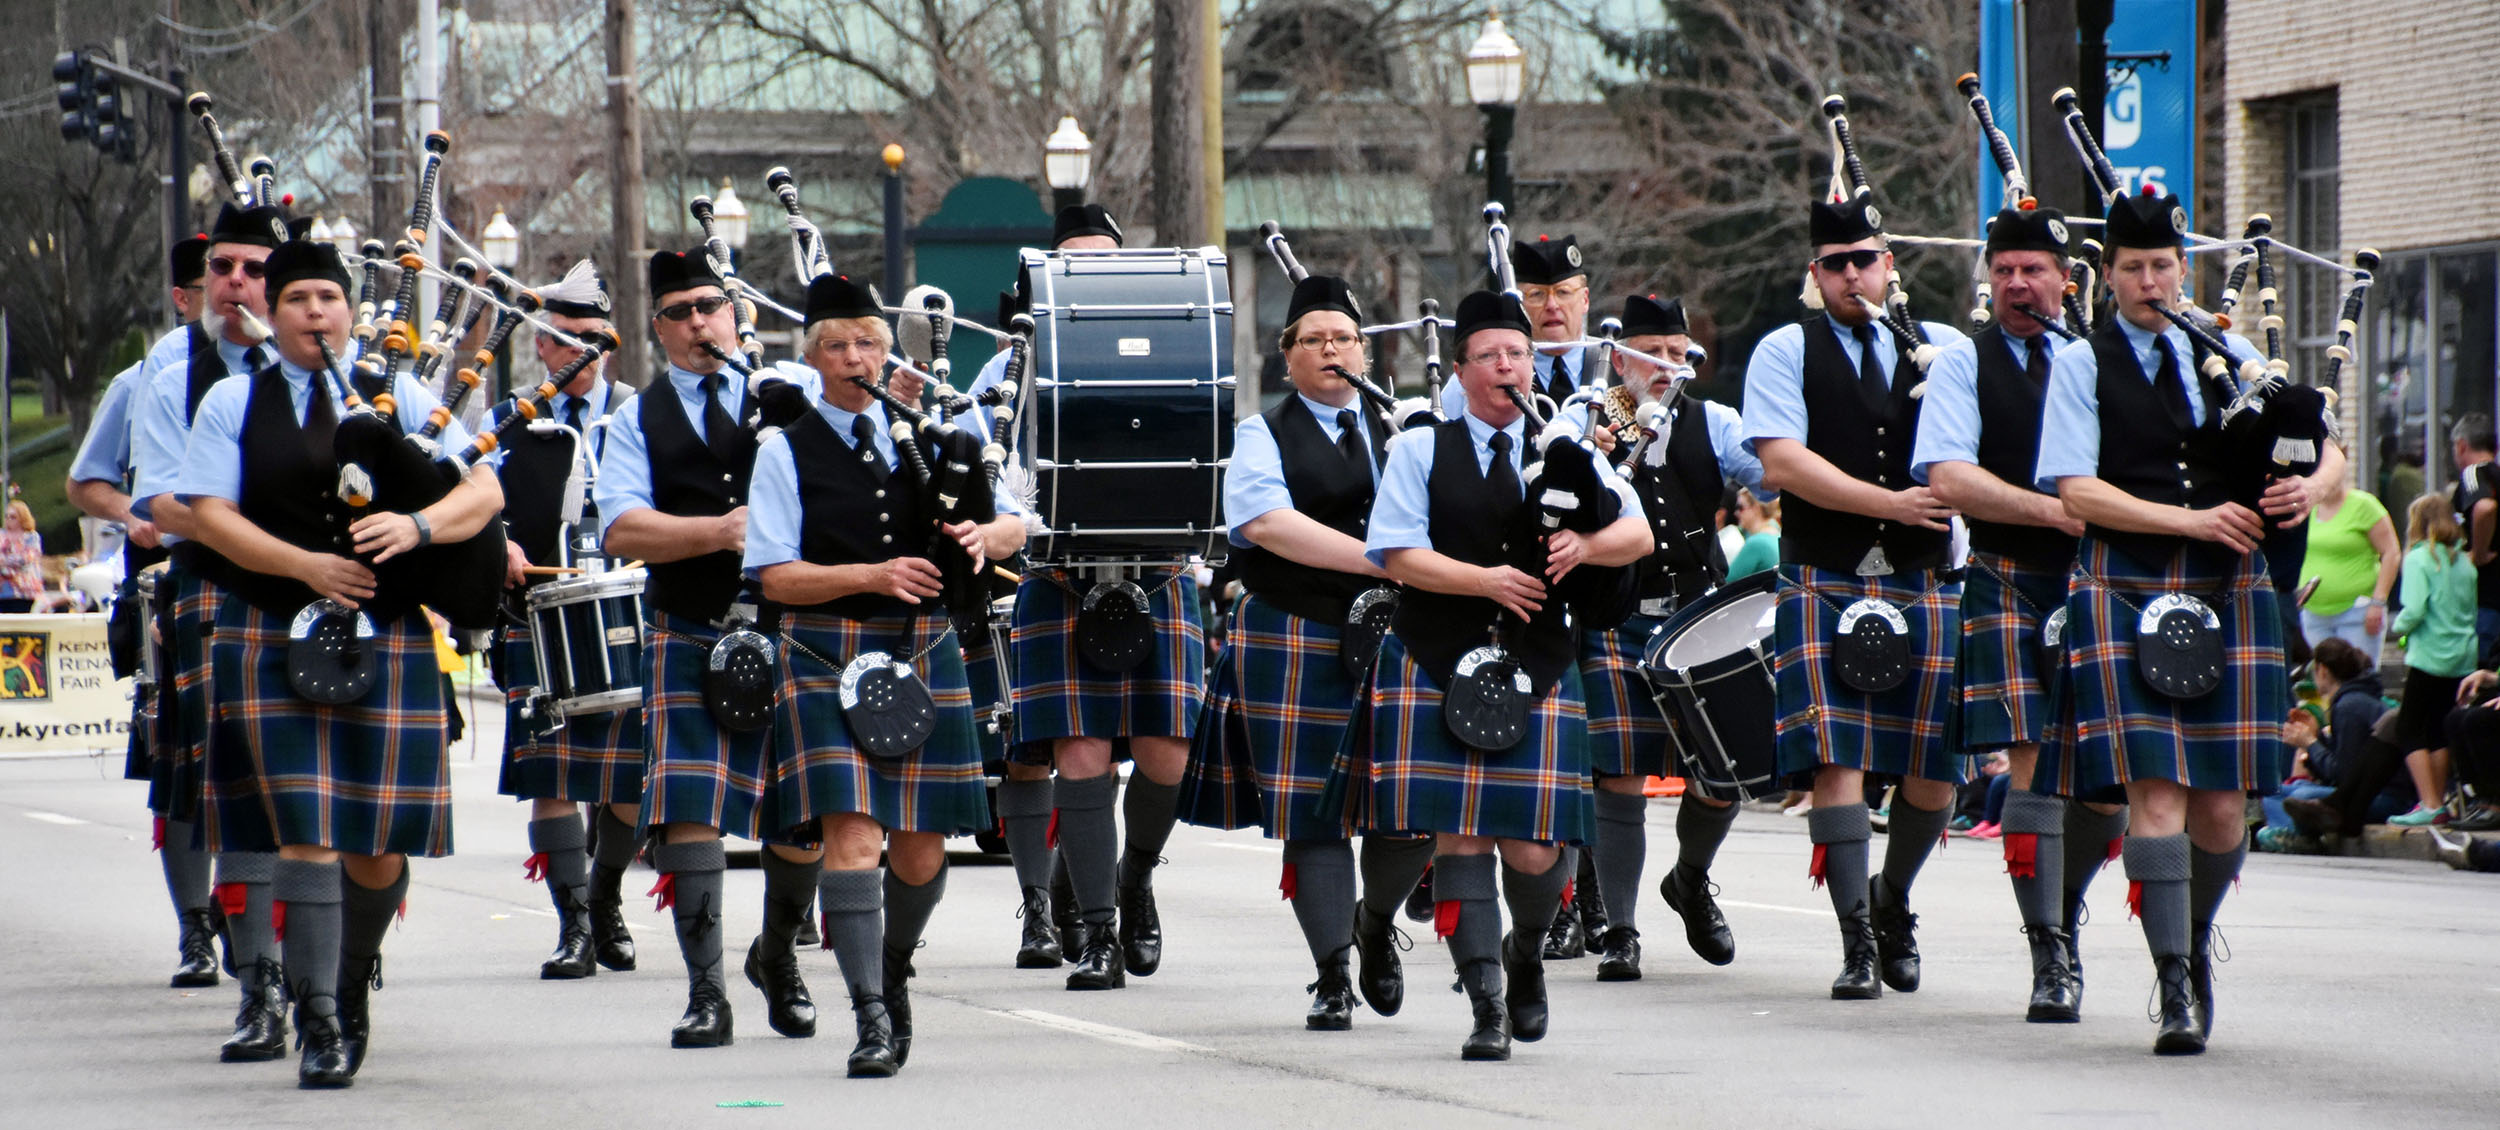 Lexington St. Patrick's parade entries extended until March 4